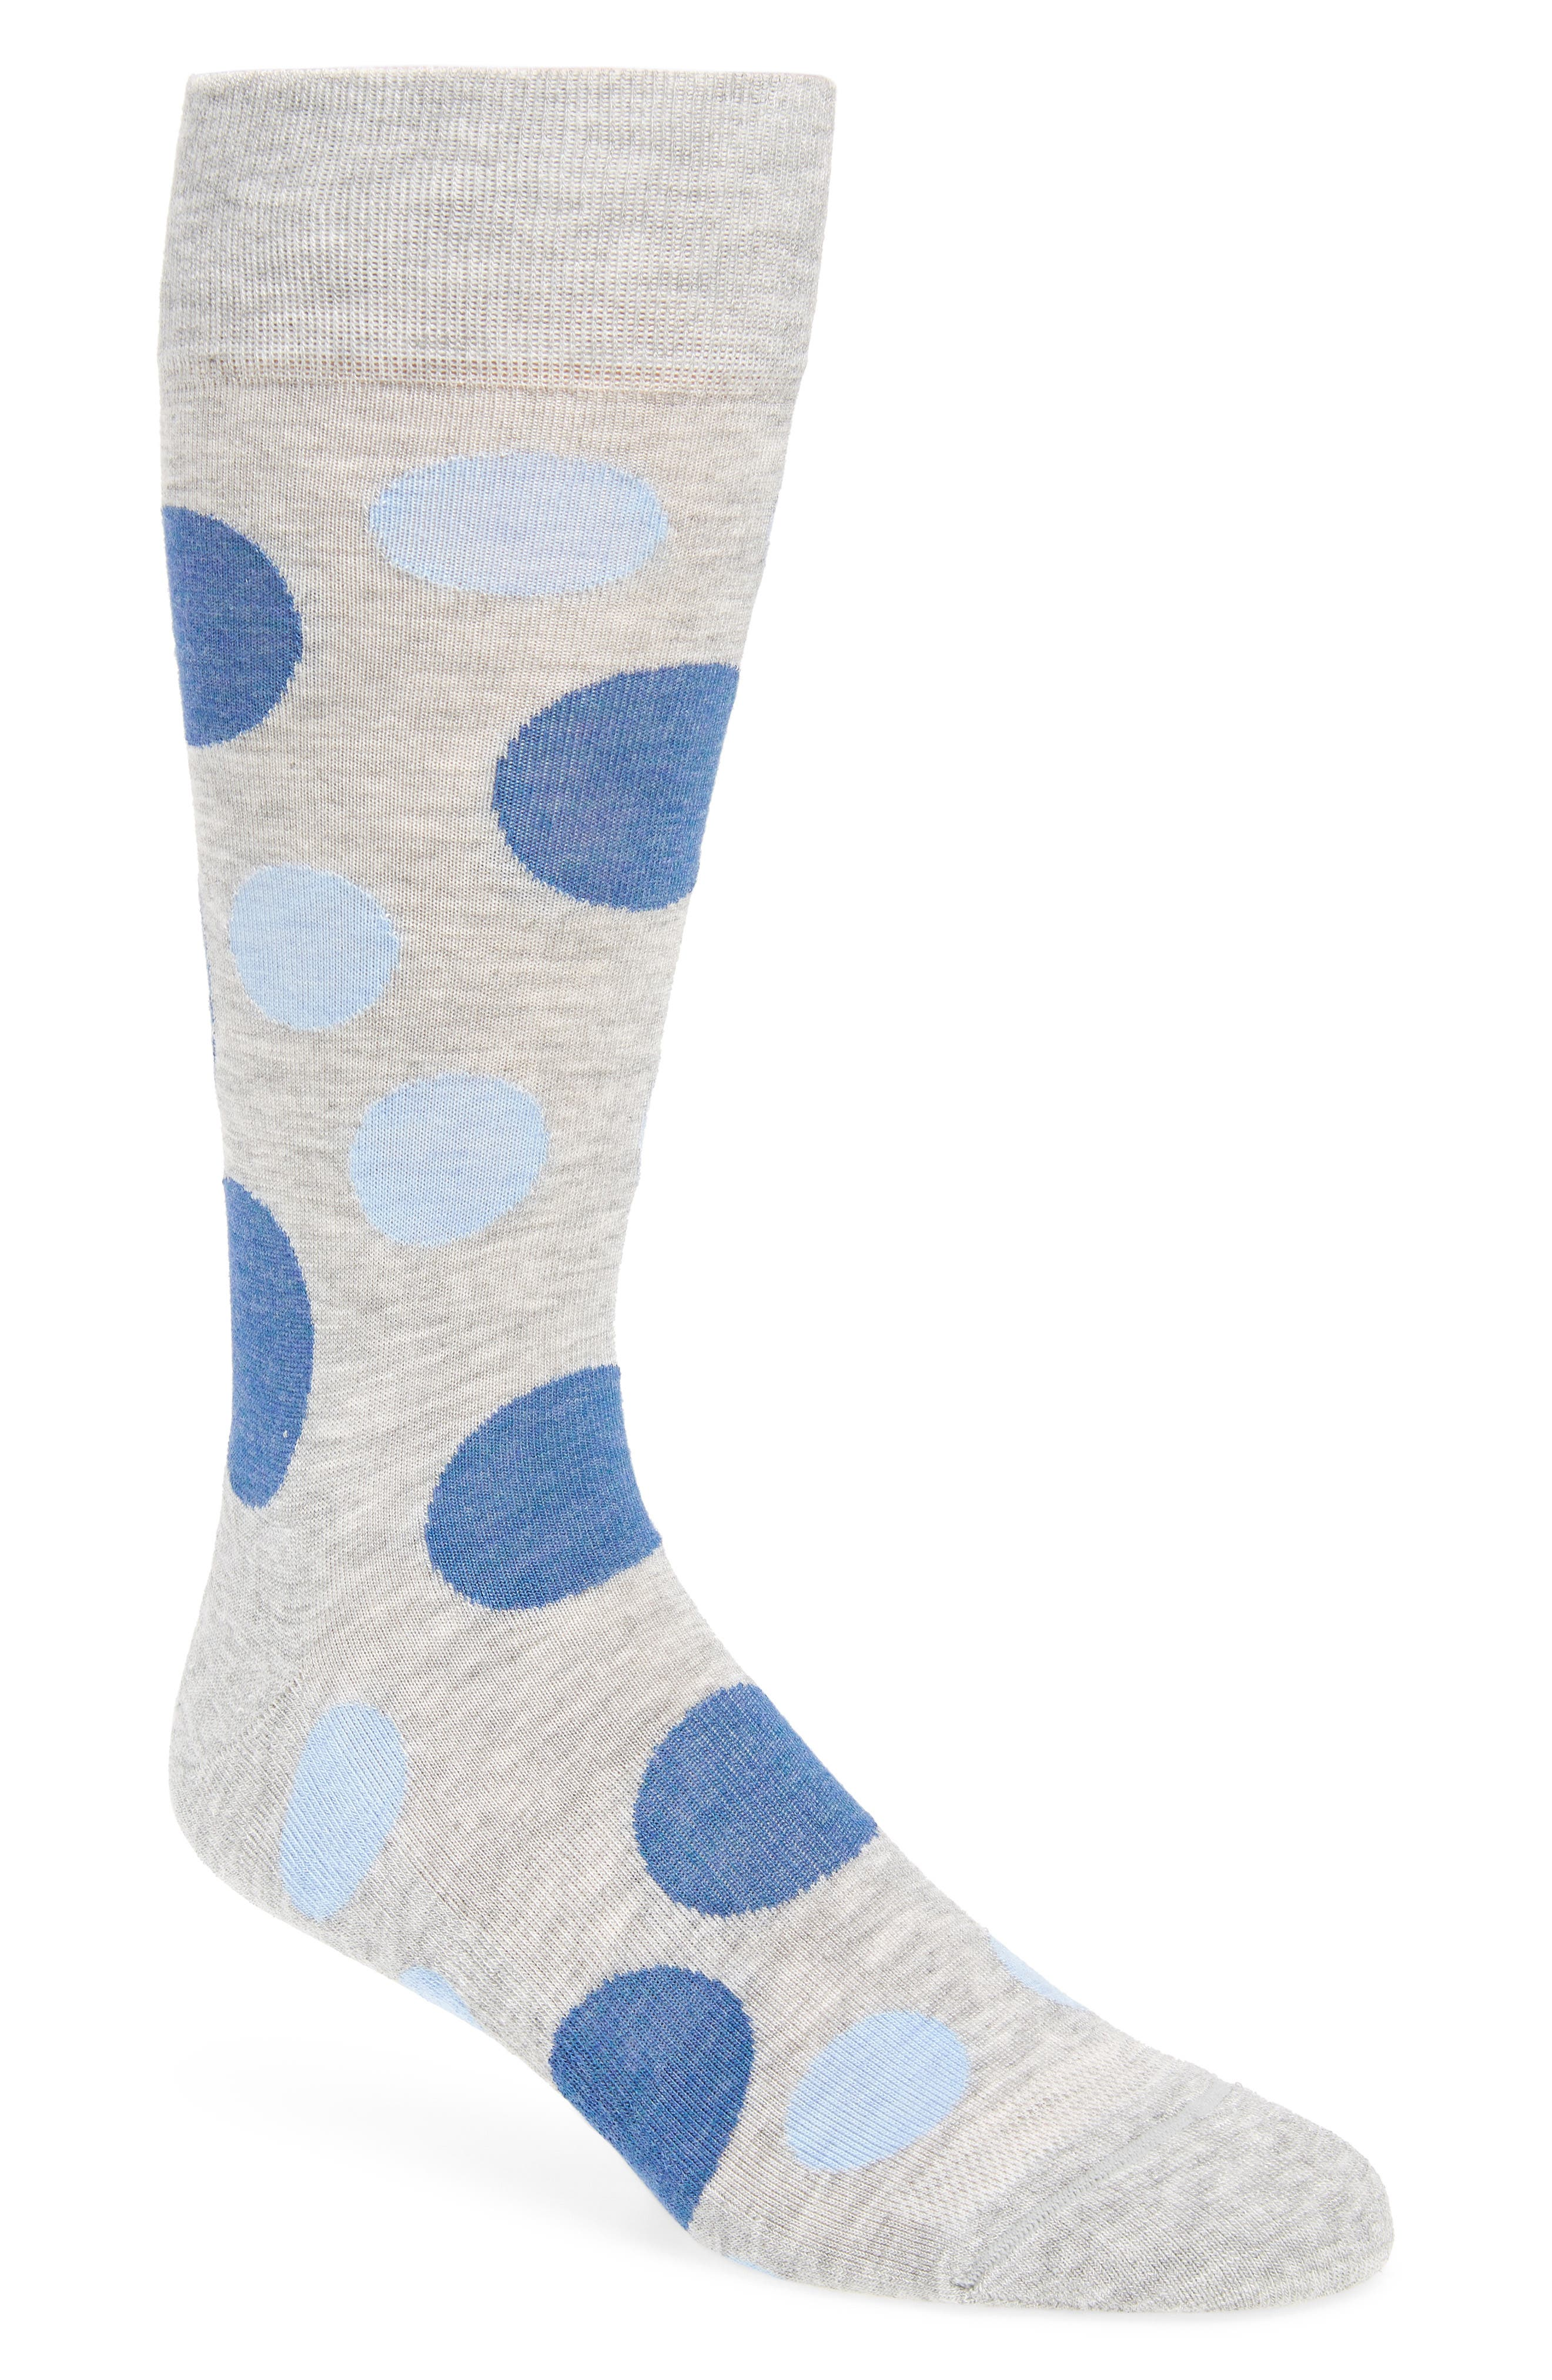 Dot Socks,                             Main thumbnail 1, color,                             030